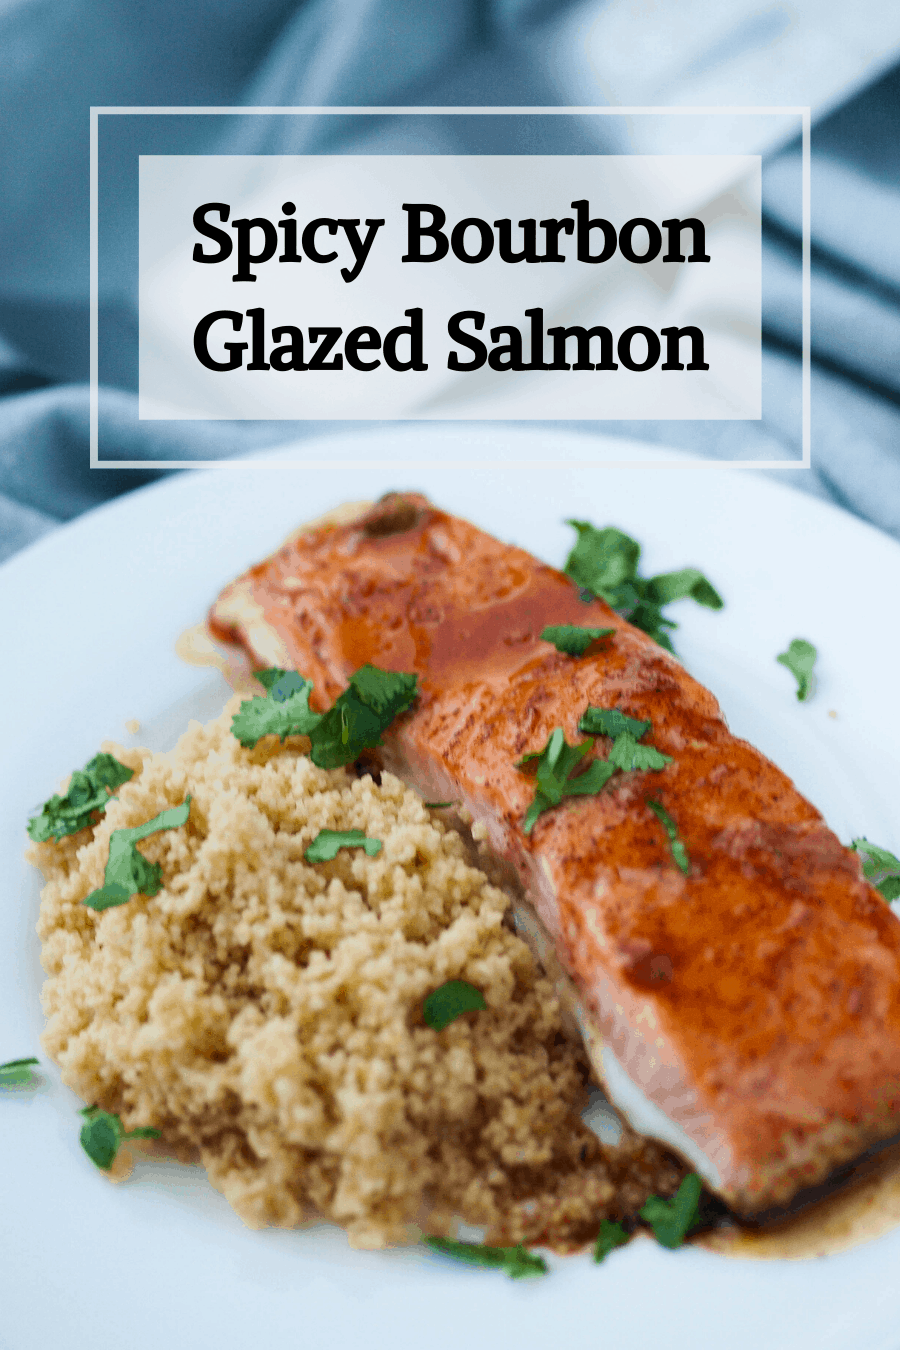 A pinterest pin for spicy bourbon glazed salmon. A plate of salmon and couscous sits in the background.